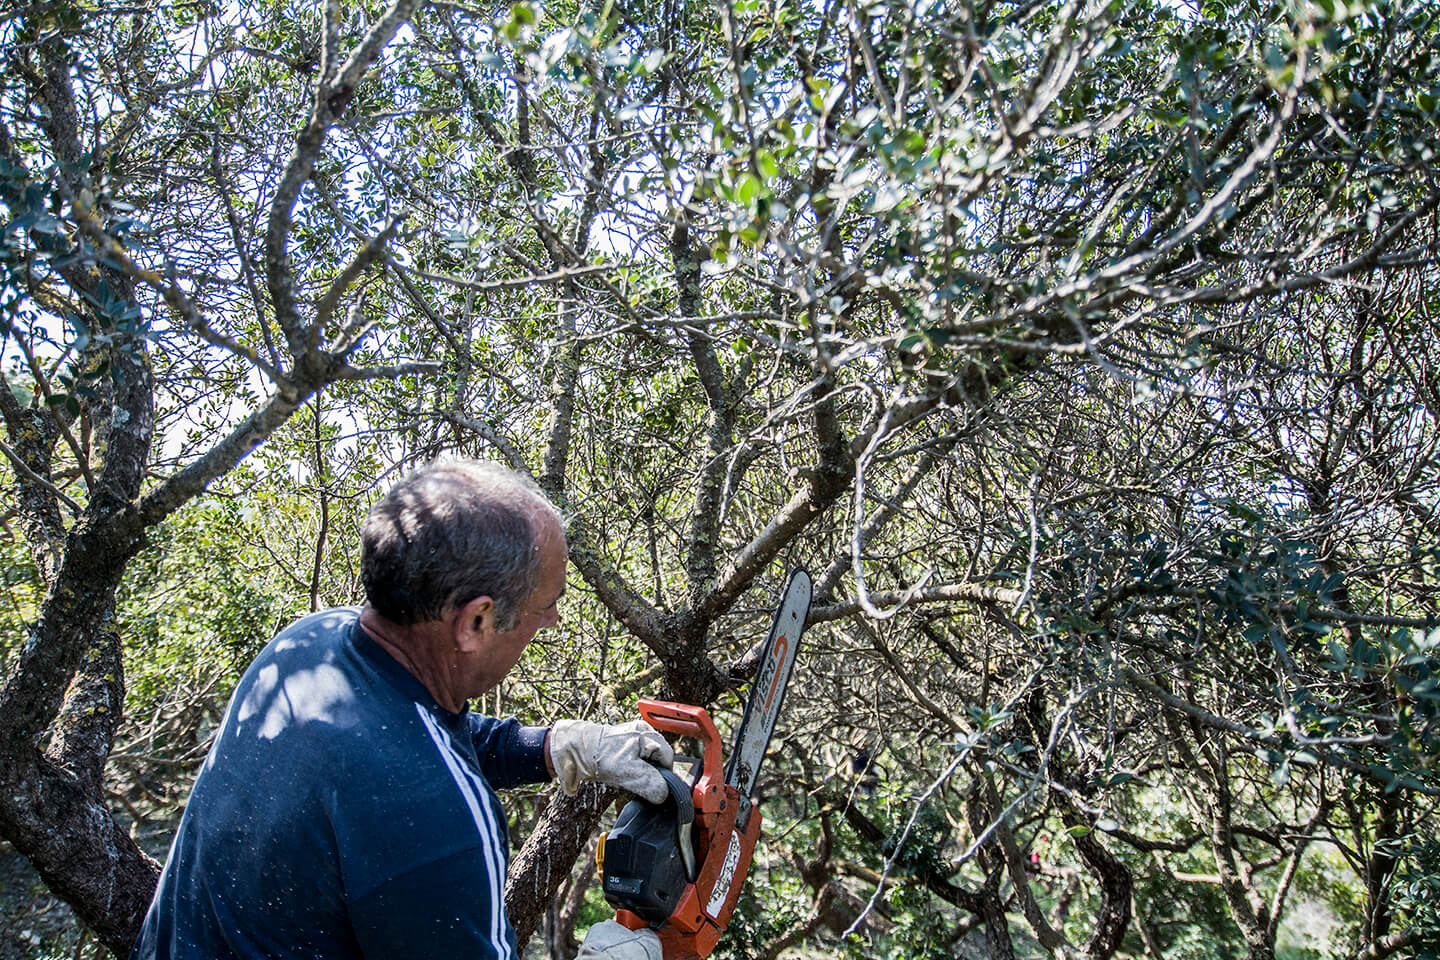 Pruning process of mastiha trees